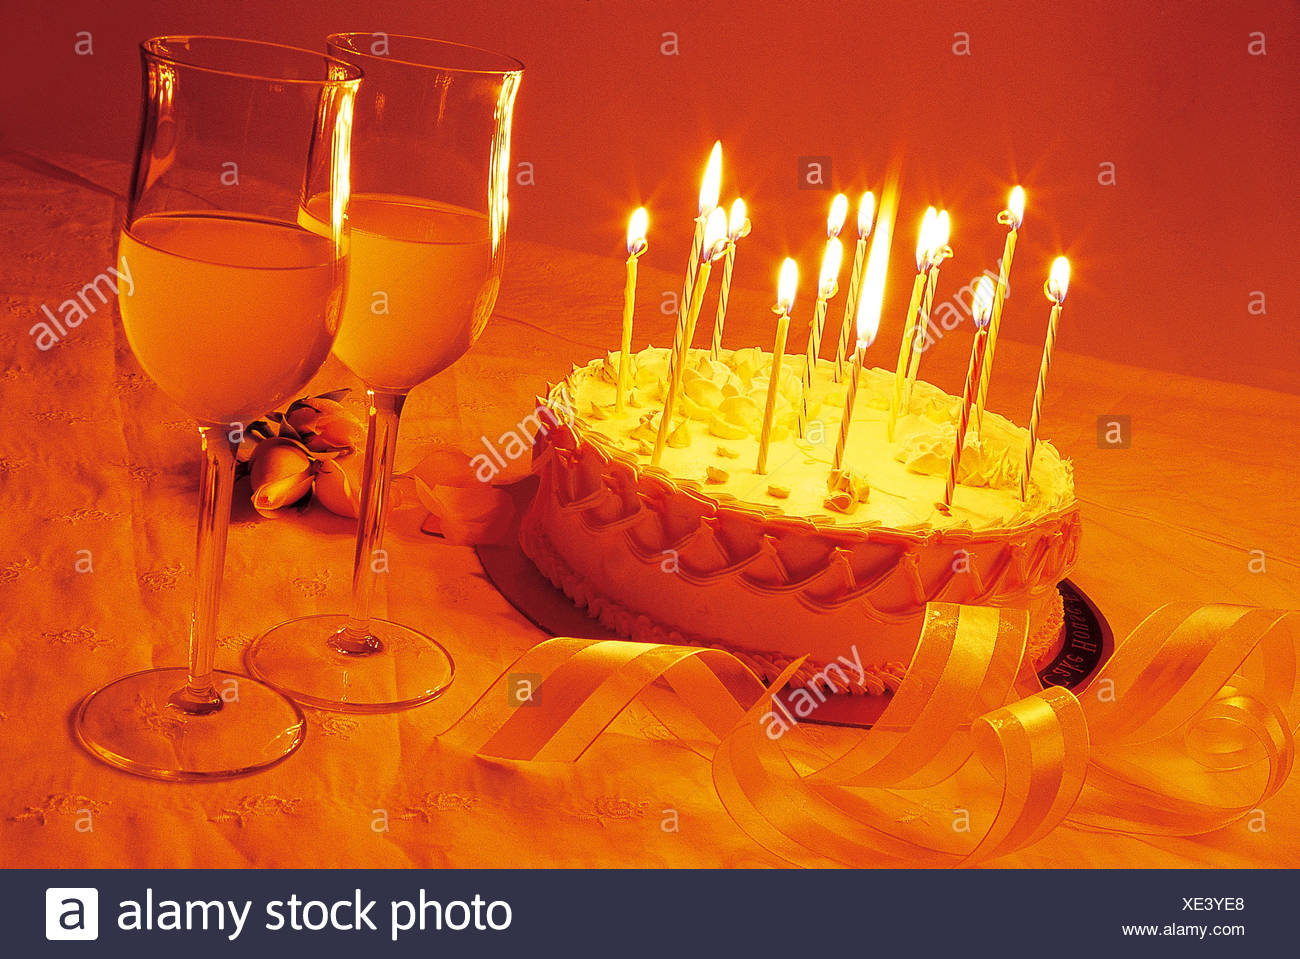 Birthday Cake And Wine Glasses On The Table